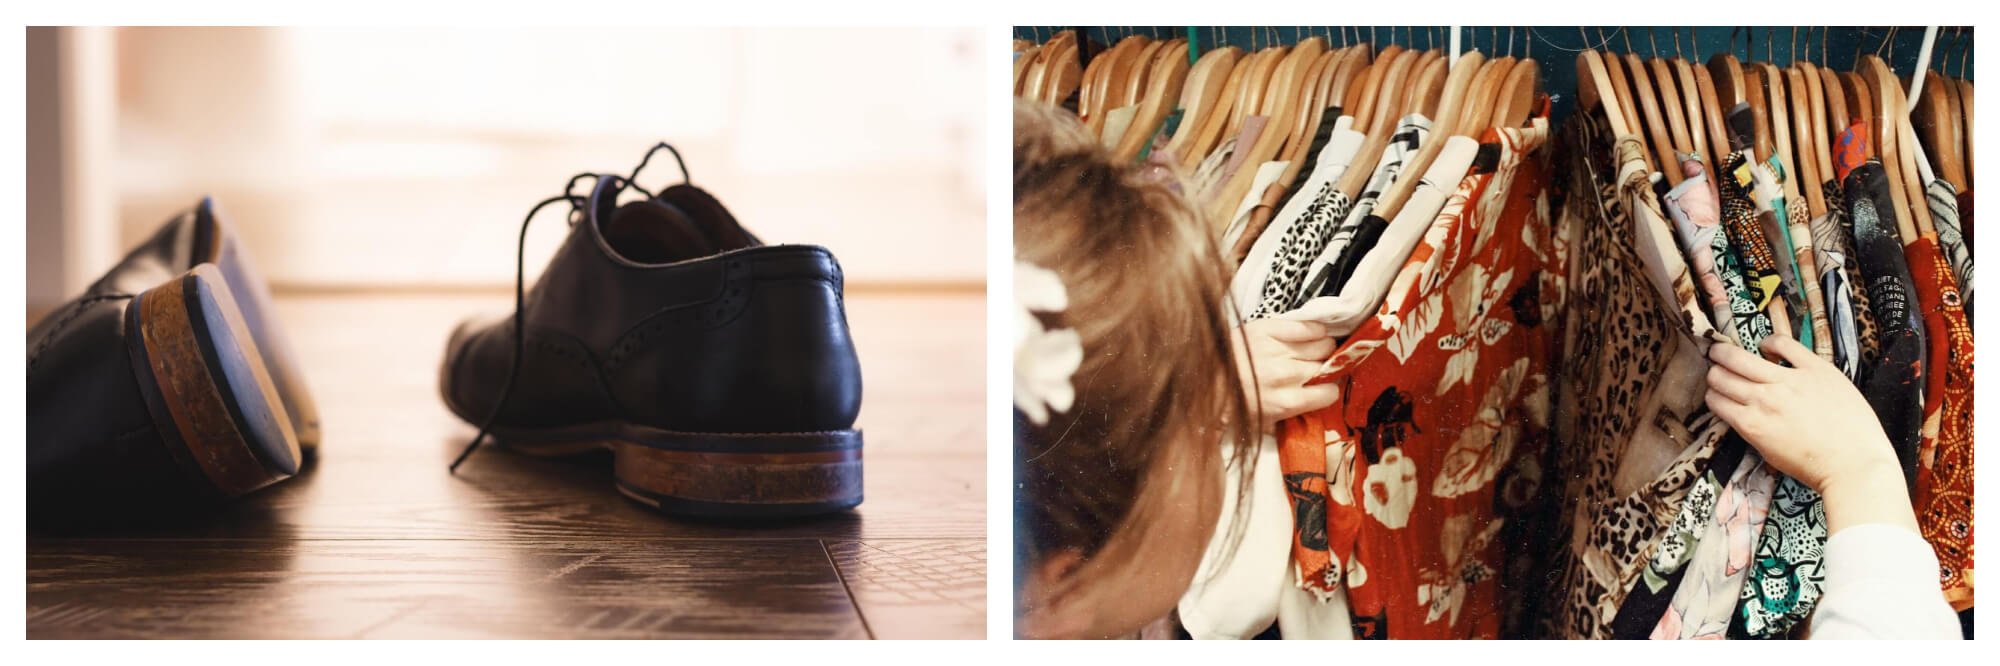 Left: a pair of men's leather brown shoes strewn on a wooden floor  Right: a woman searches a rack full of colourful shirts.